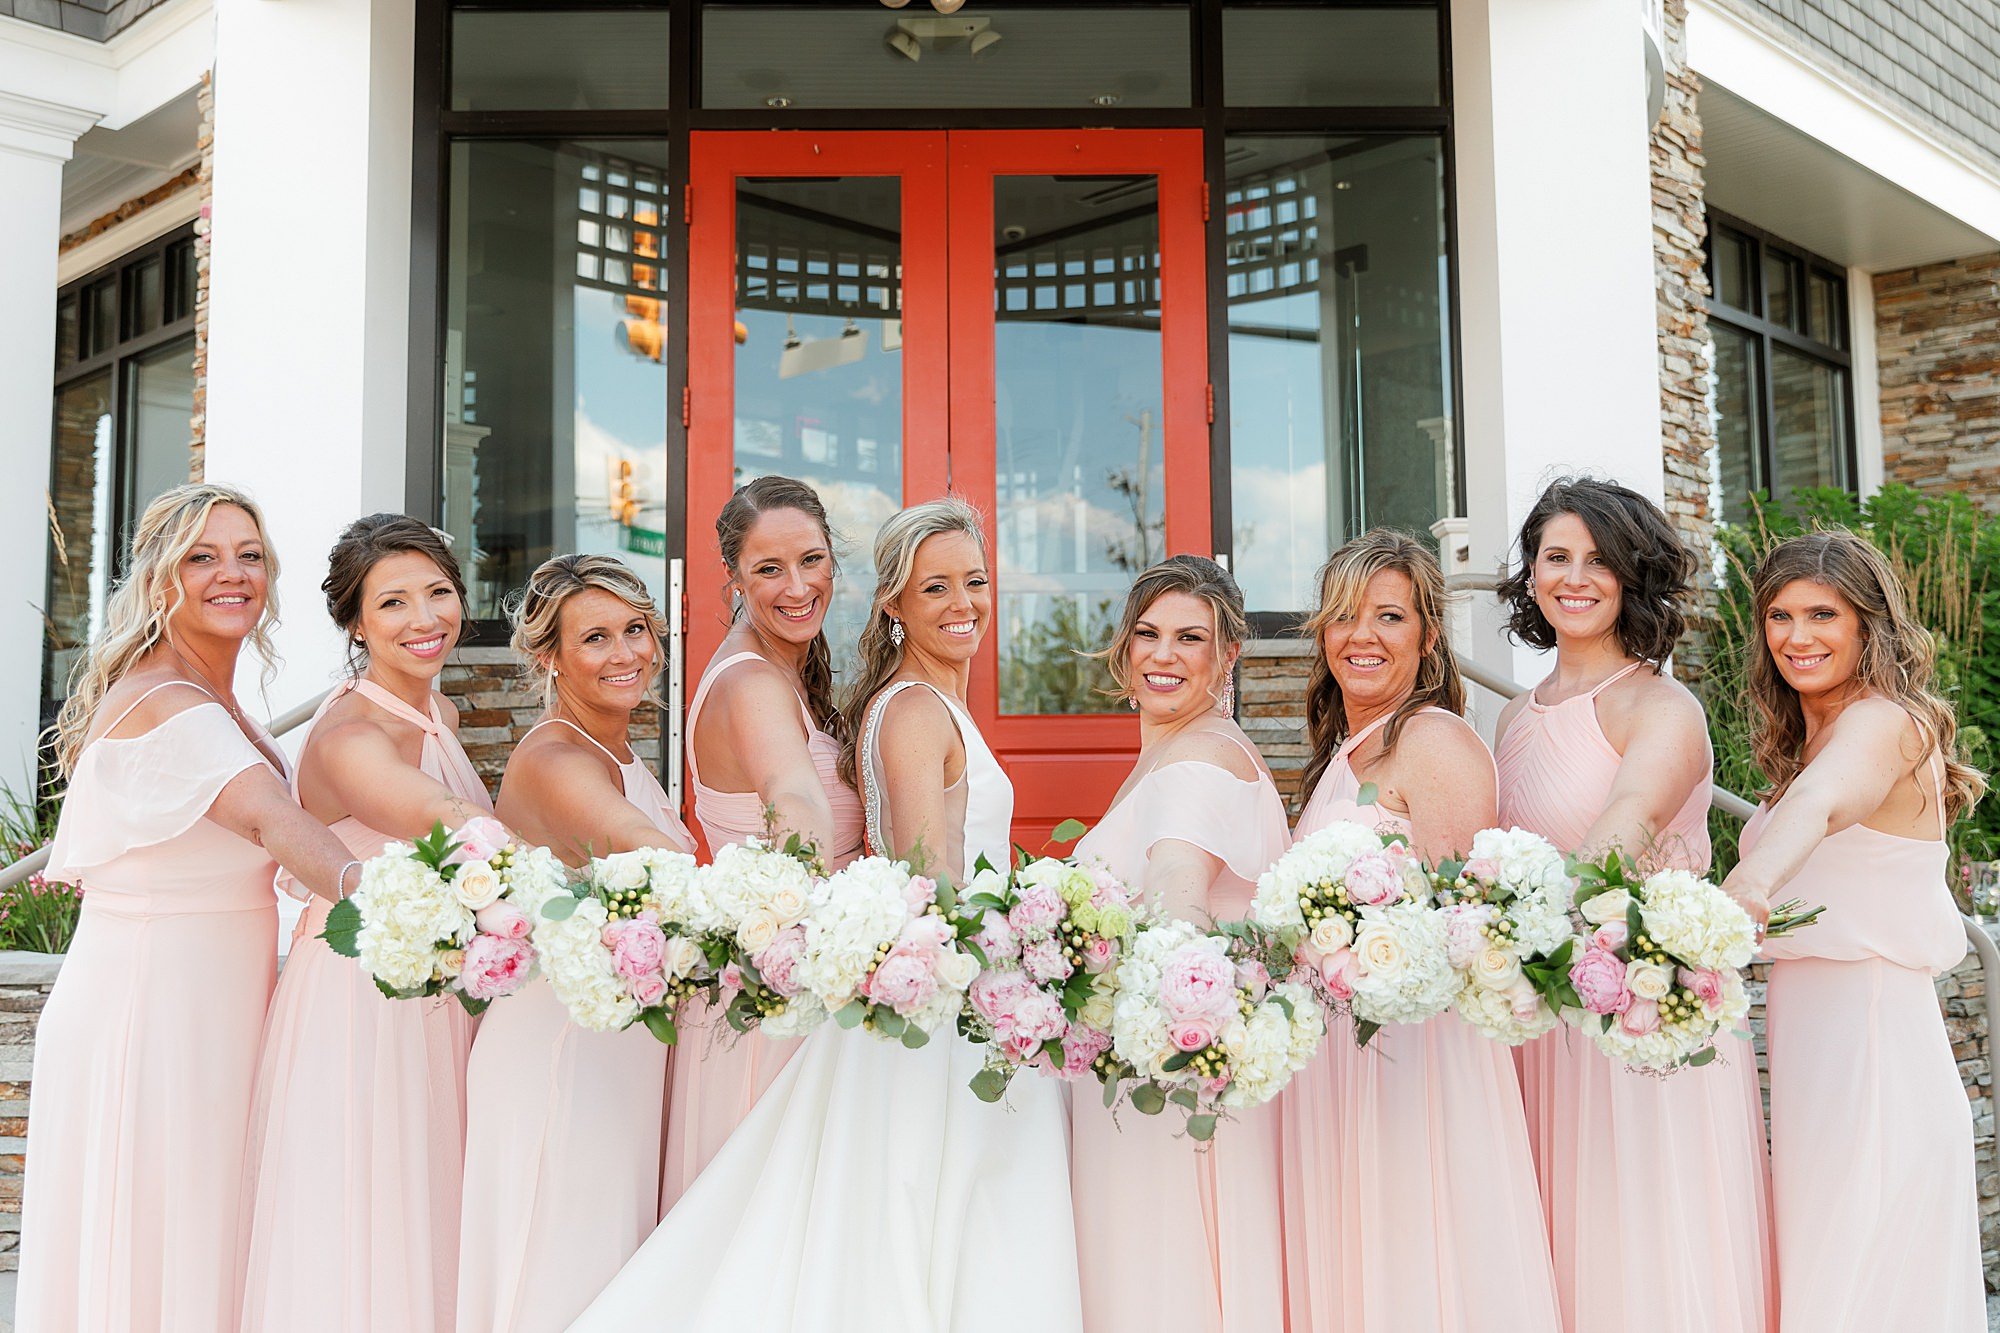 Natural and Vibrant Wedding Photography at the Reeds in Stone Harbor NJ by Magdalena Studios 0033